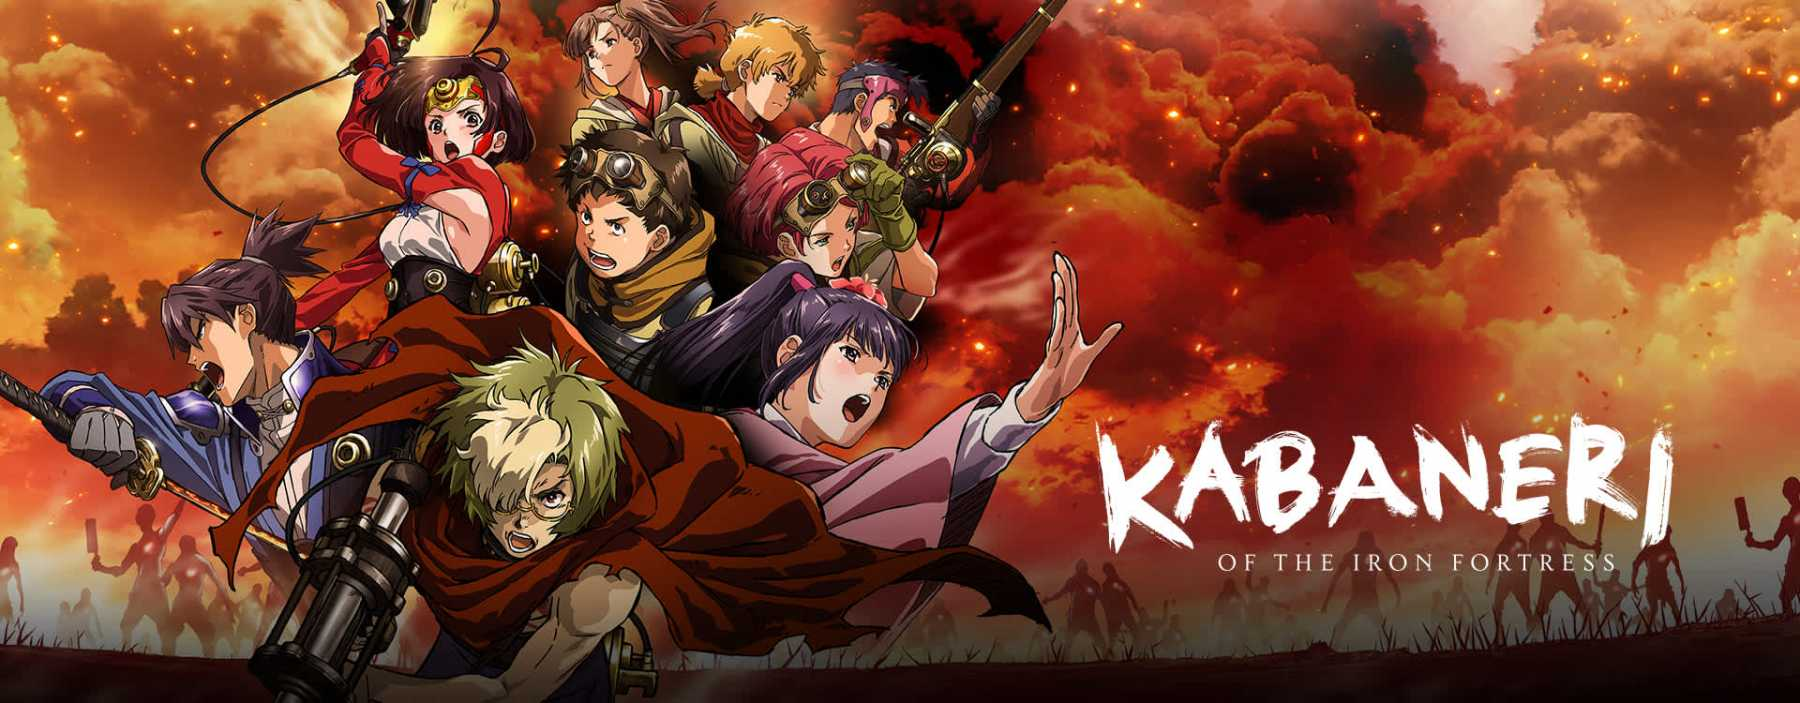 Kabaneri Of The Iron Fortress Succeeds In Every Way Possible | kabaneri of the iron fortress